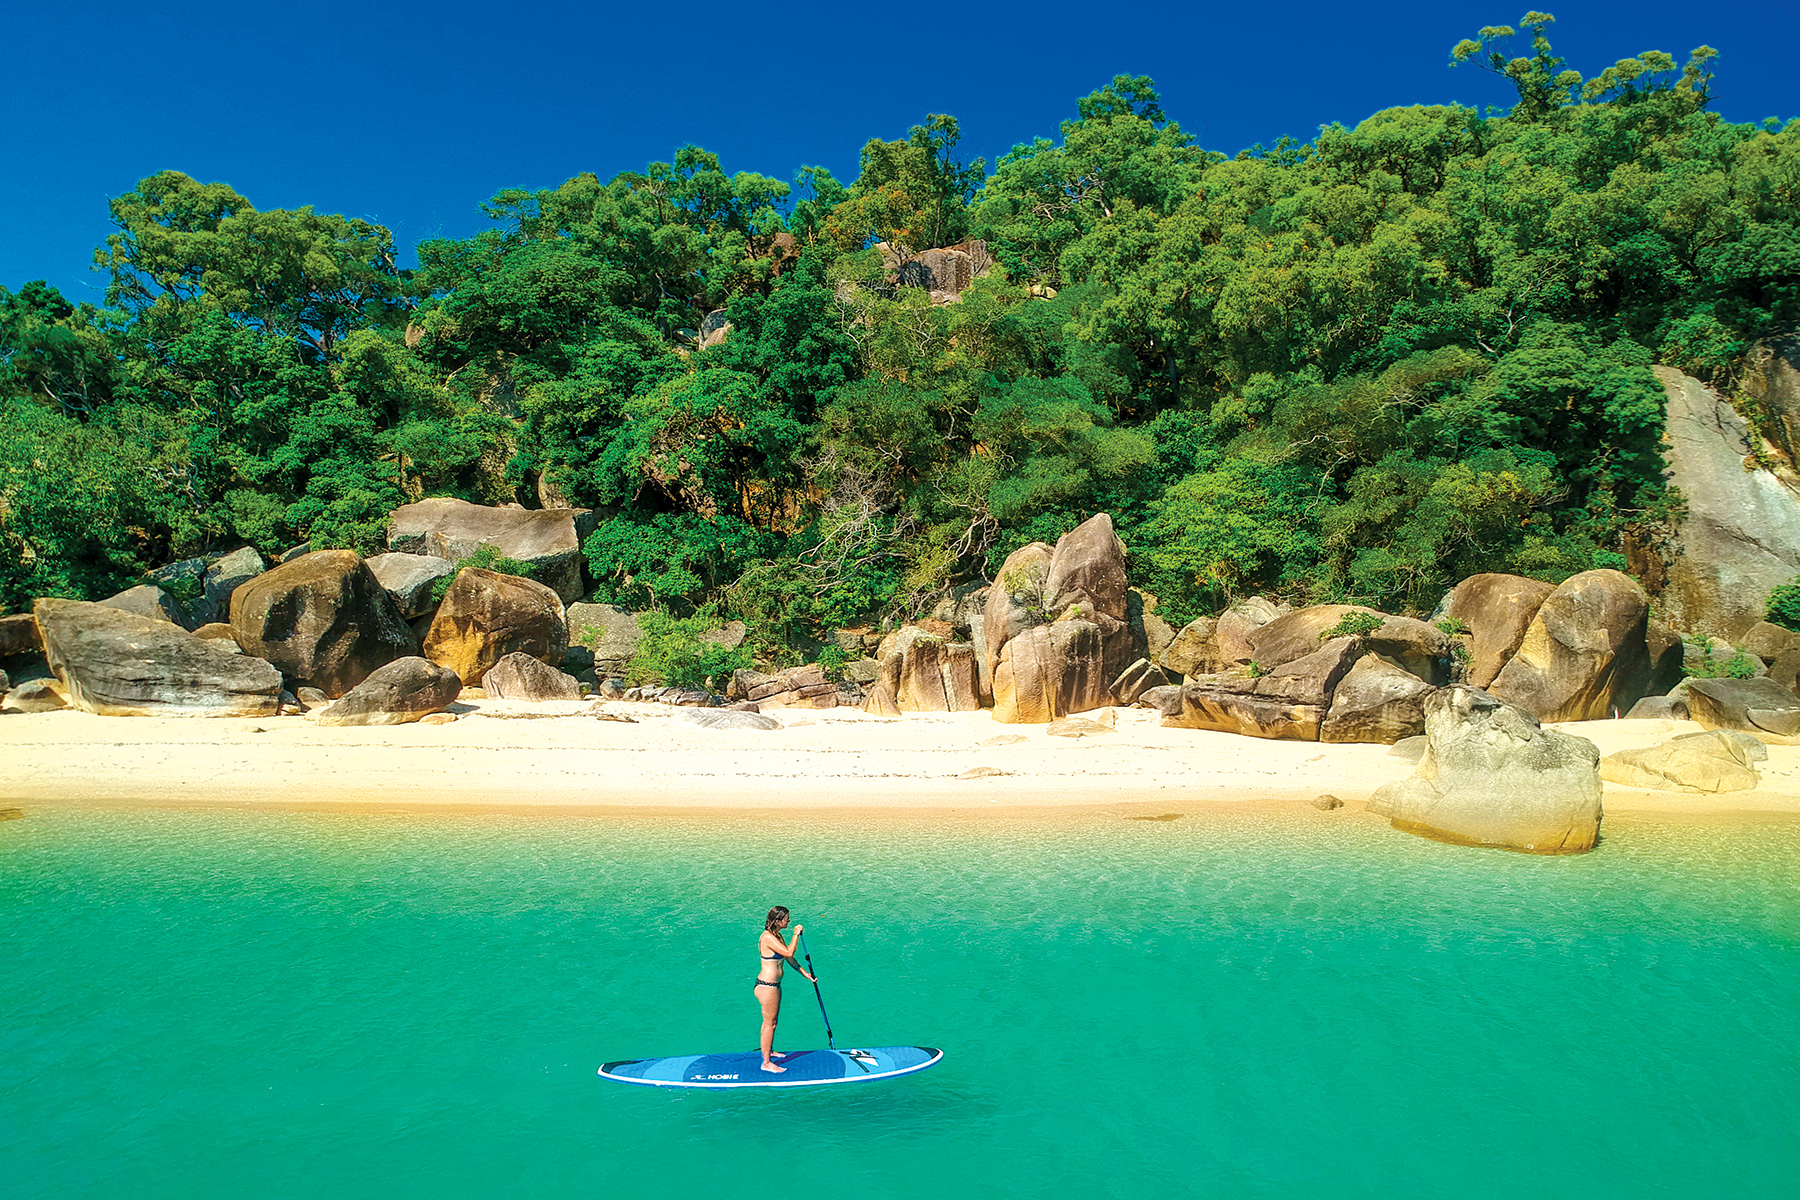 Orpheus Island – Stand-up paddle-boarder. PICTURE CREDIT: Mark Fitzpatrick